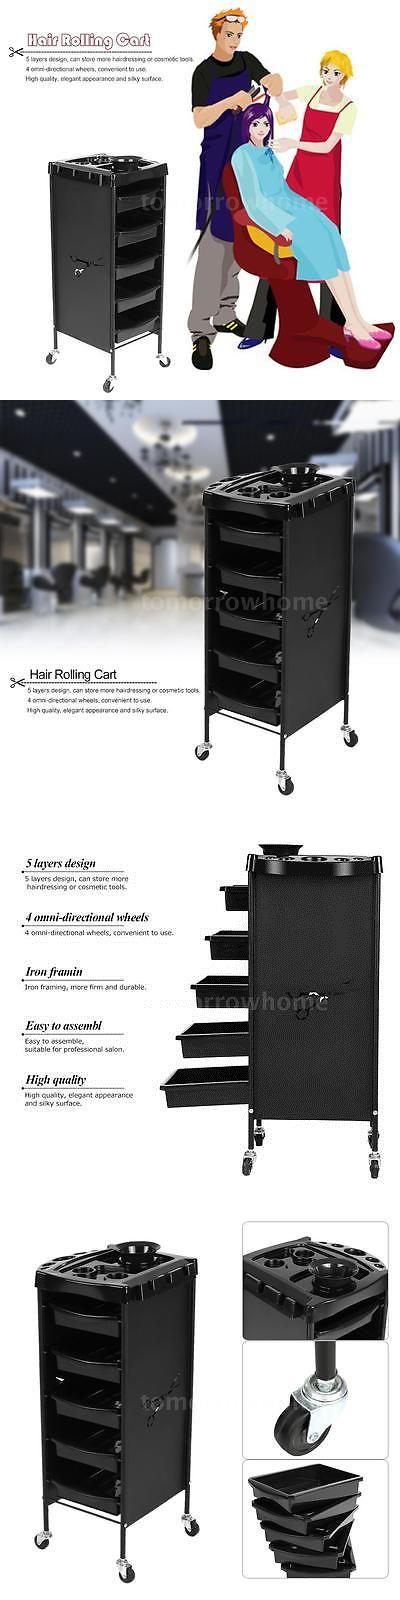 Salon and Spa Supplies: Portable Hair Drawer Hairdressing Colouring Cart Salon Trolley Storage Cart H8f2 -> BUY IT NOW ONLY: $58.88 on eBay!